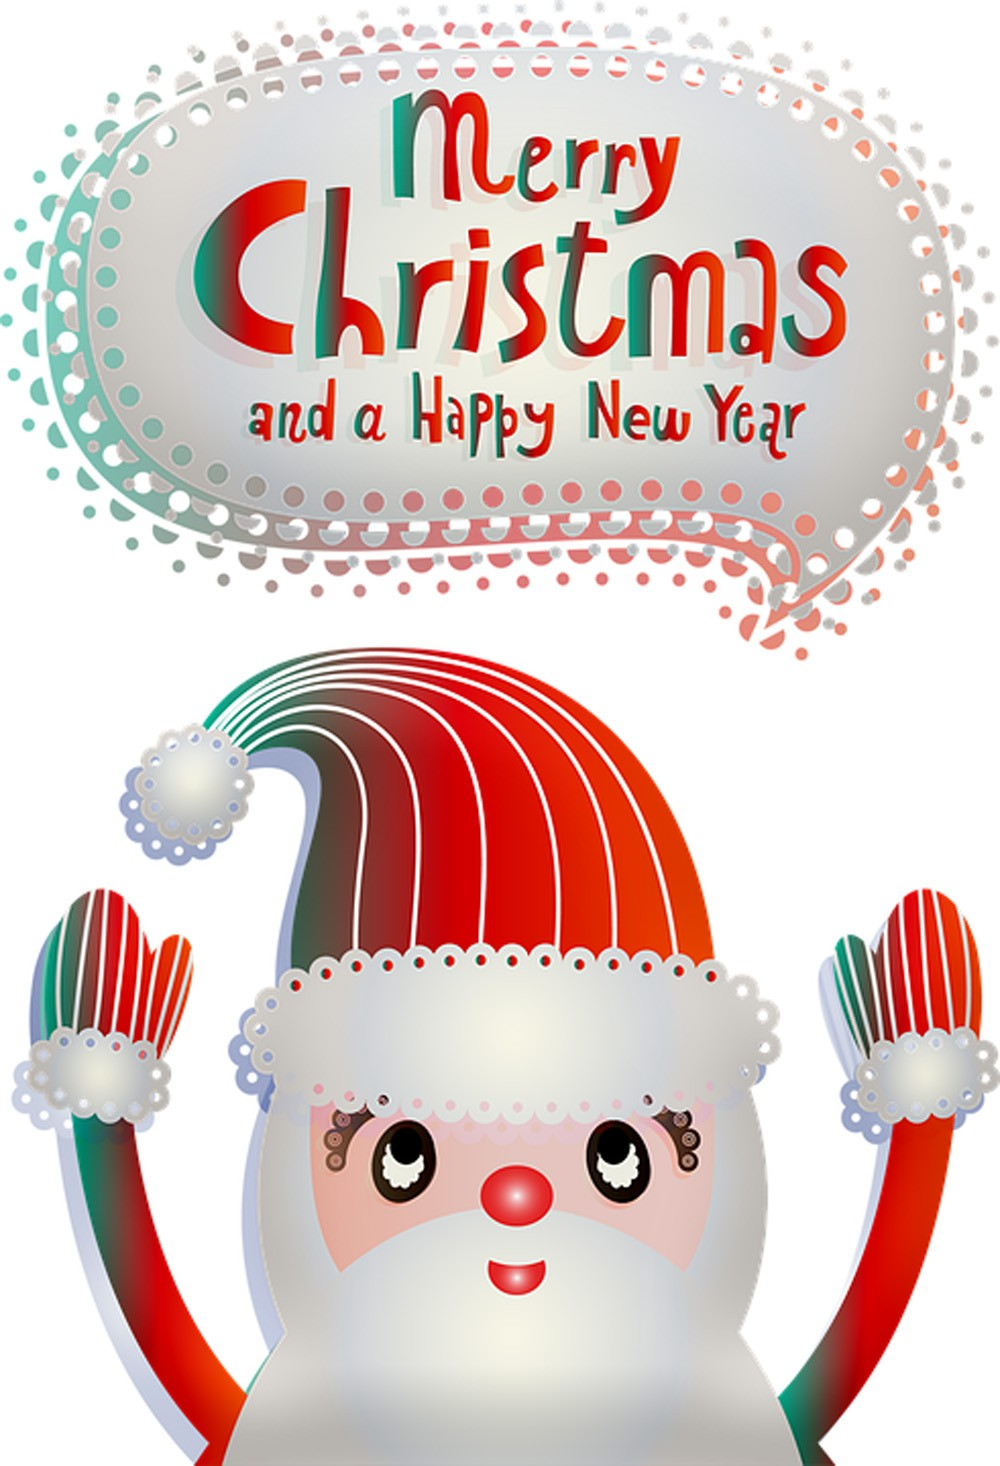 Merry-Christmas-Images